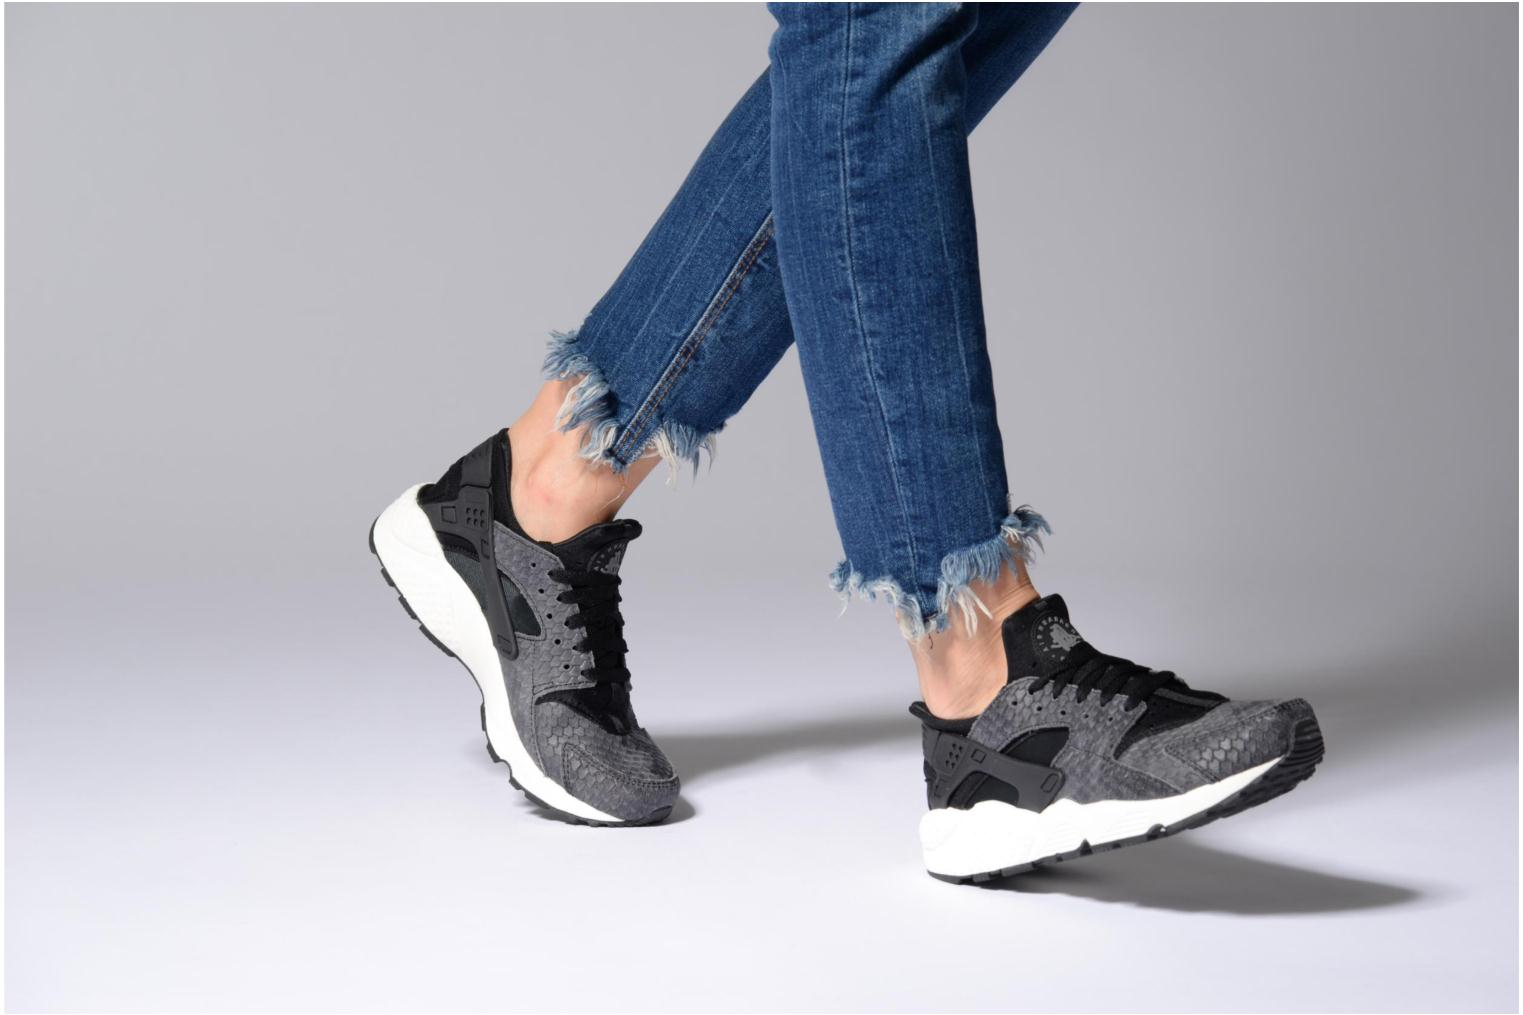 Wmns Air Huarache Run Prm Black/black-sail-gum med brown